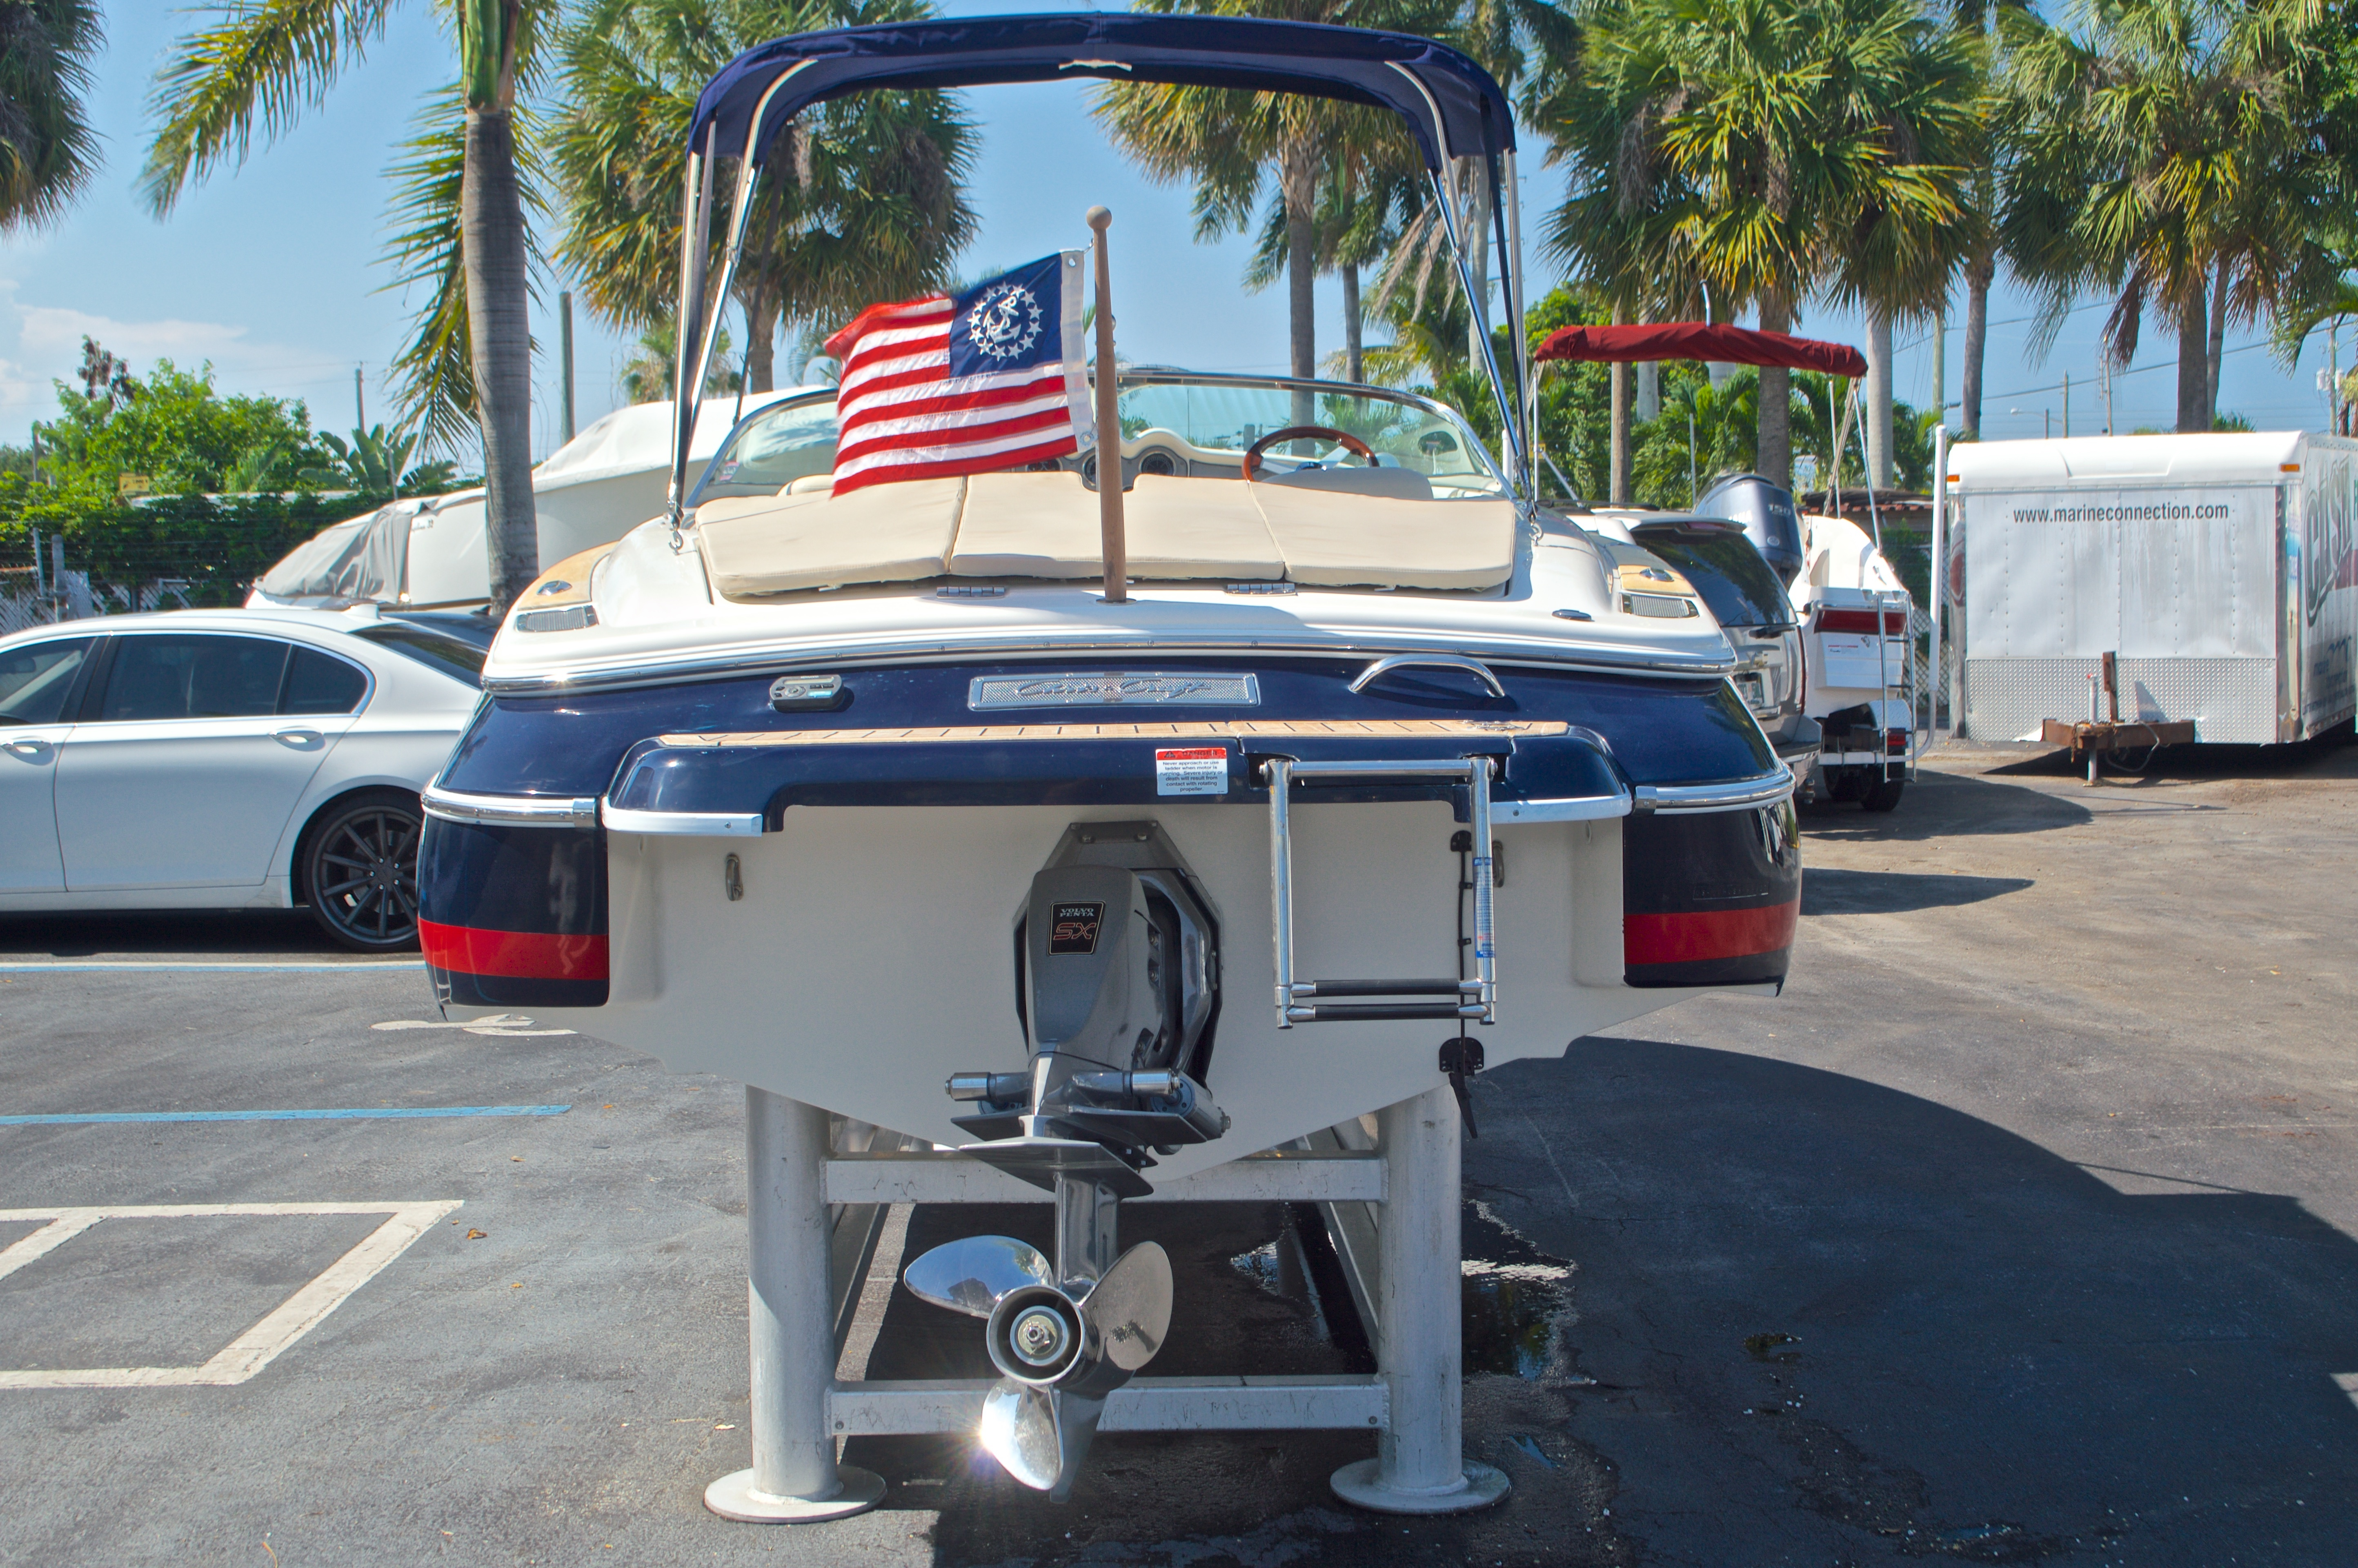 Thumbnail 6 for Used 2007 Chris-Craft 20 Speedster boat for sale in West Palm Beach, FL